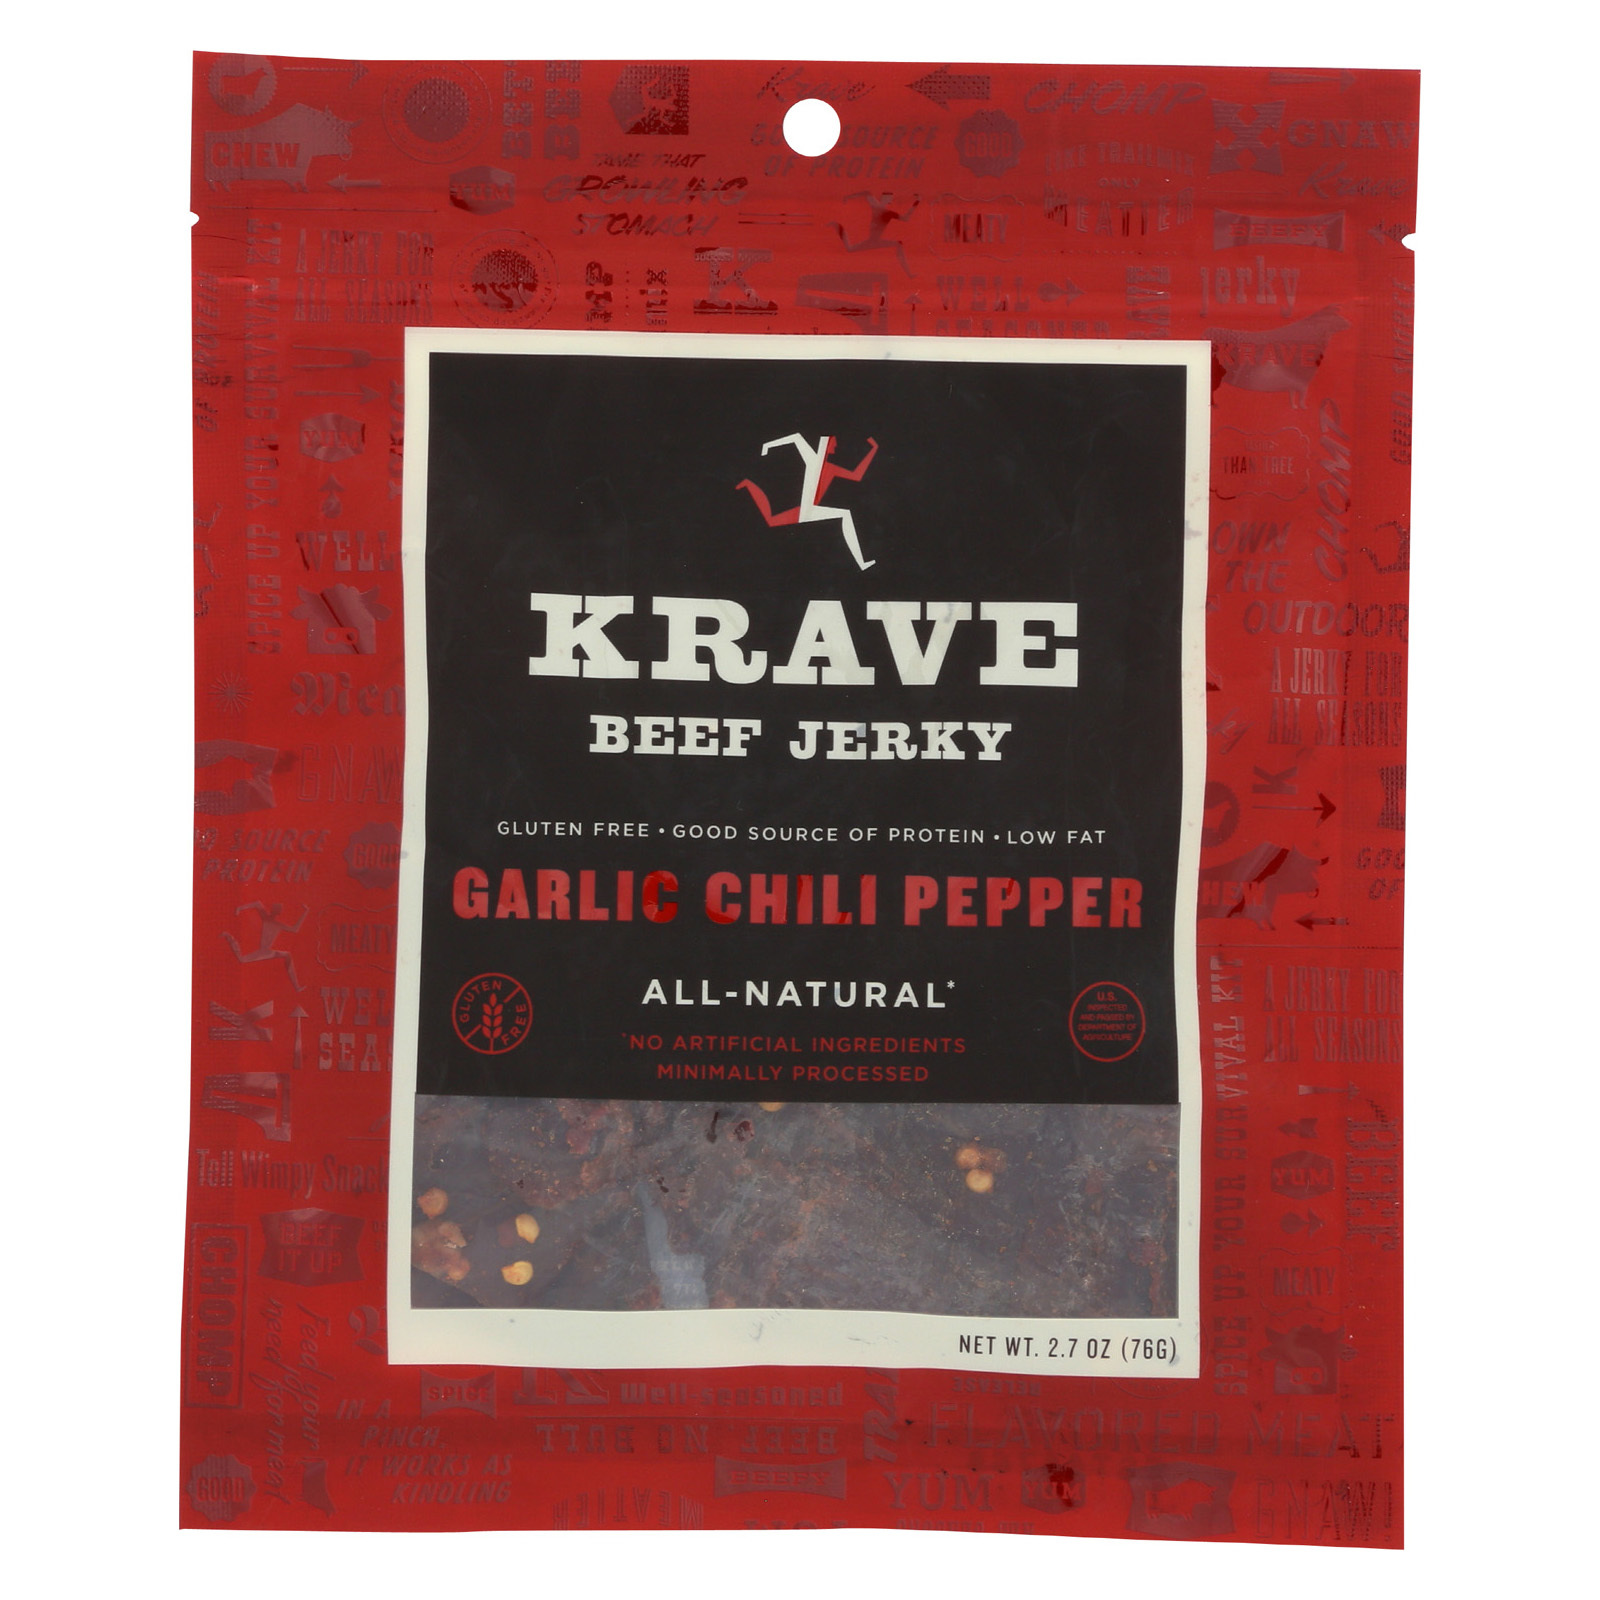 Krave Beef Jerky - Garlic Chili Pepper - Case of 8 - 2.7 oz